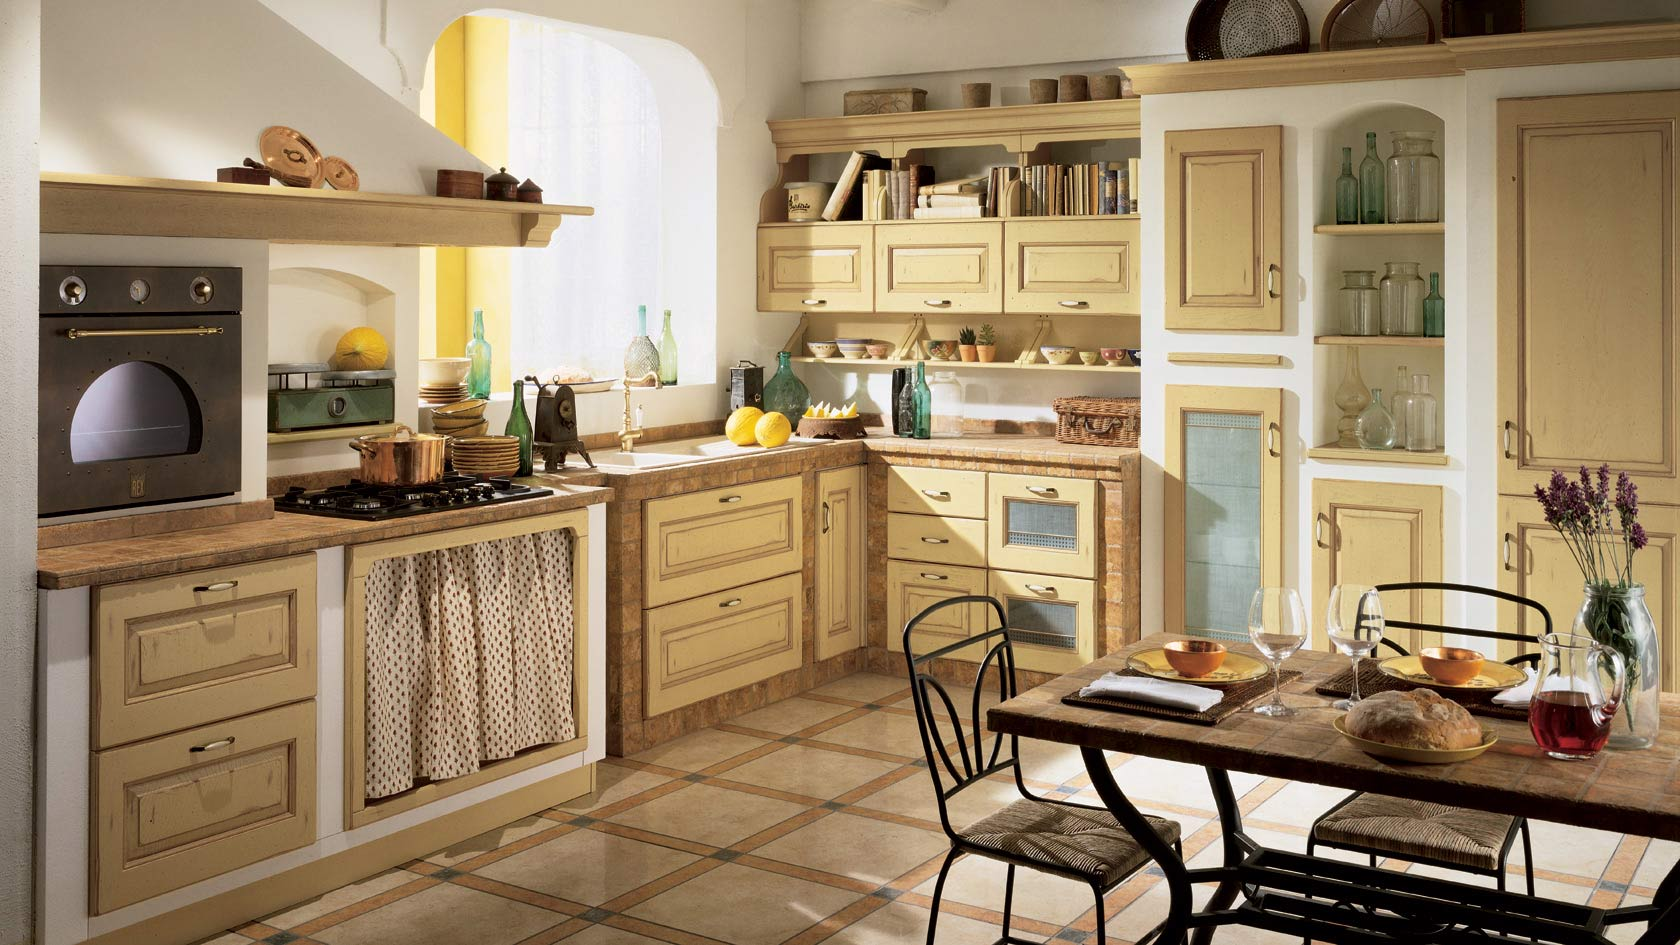 Best Cucina In Stile Provenzale Ideas - Skilifts.us - skilifts.us